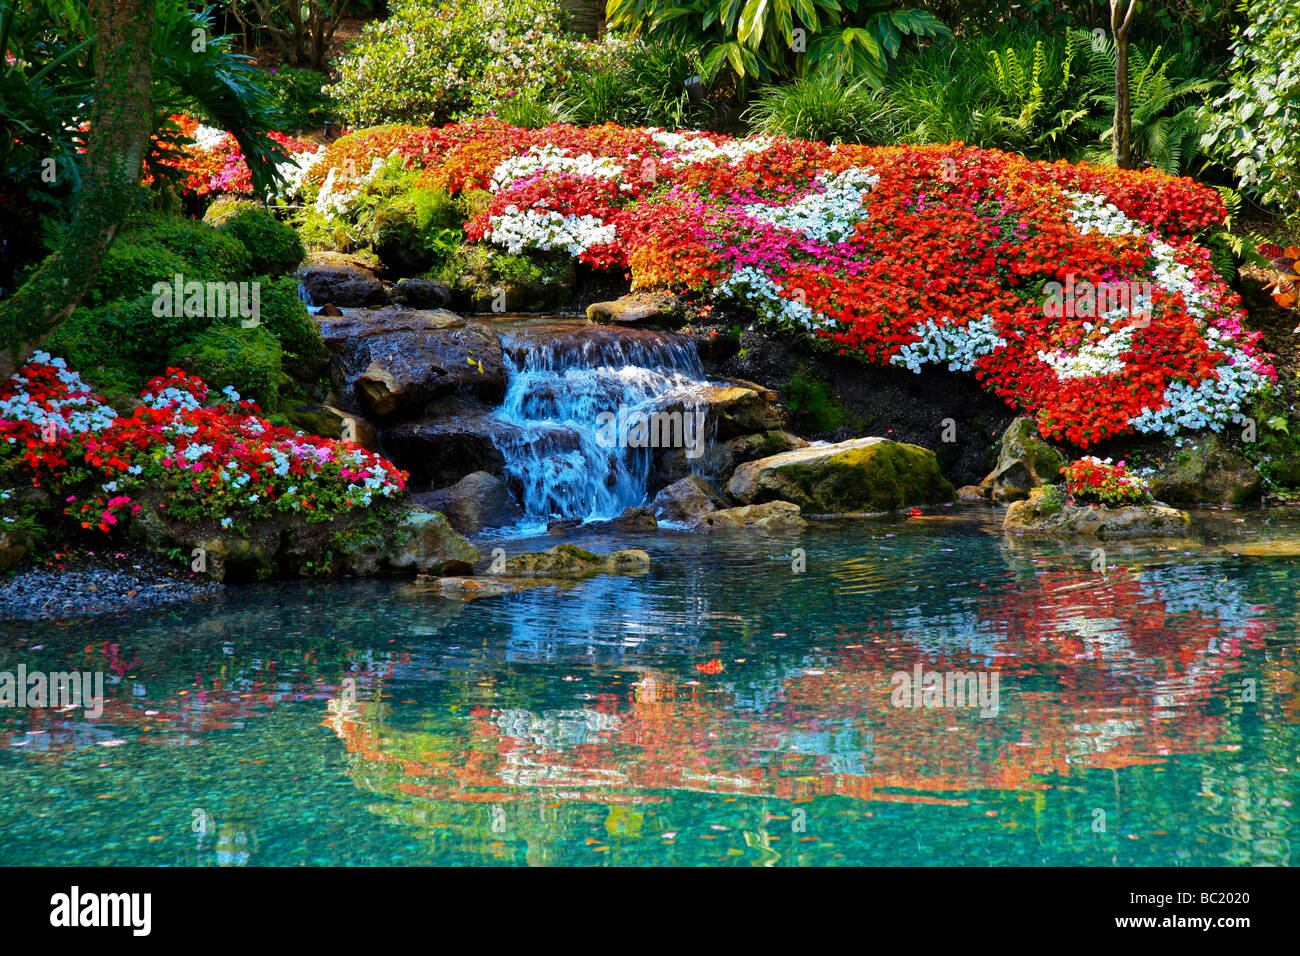 A beautiful flower garden with a waterfall in Tropical Souther Florida,  USA, America